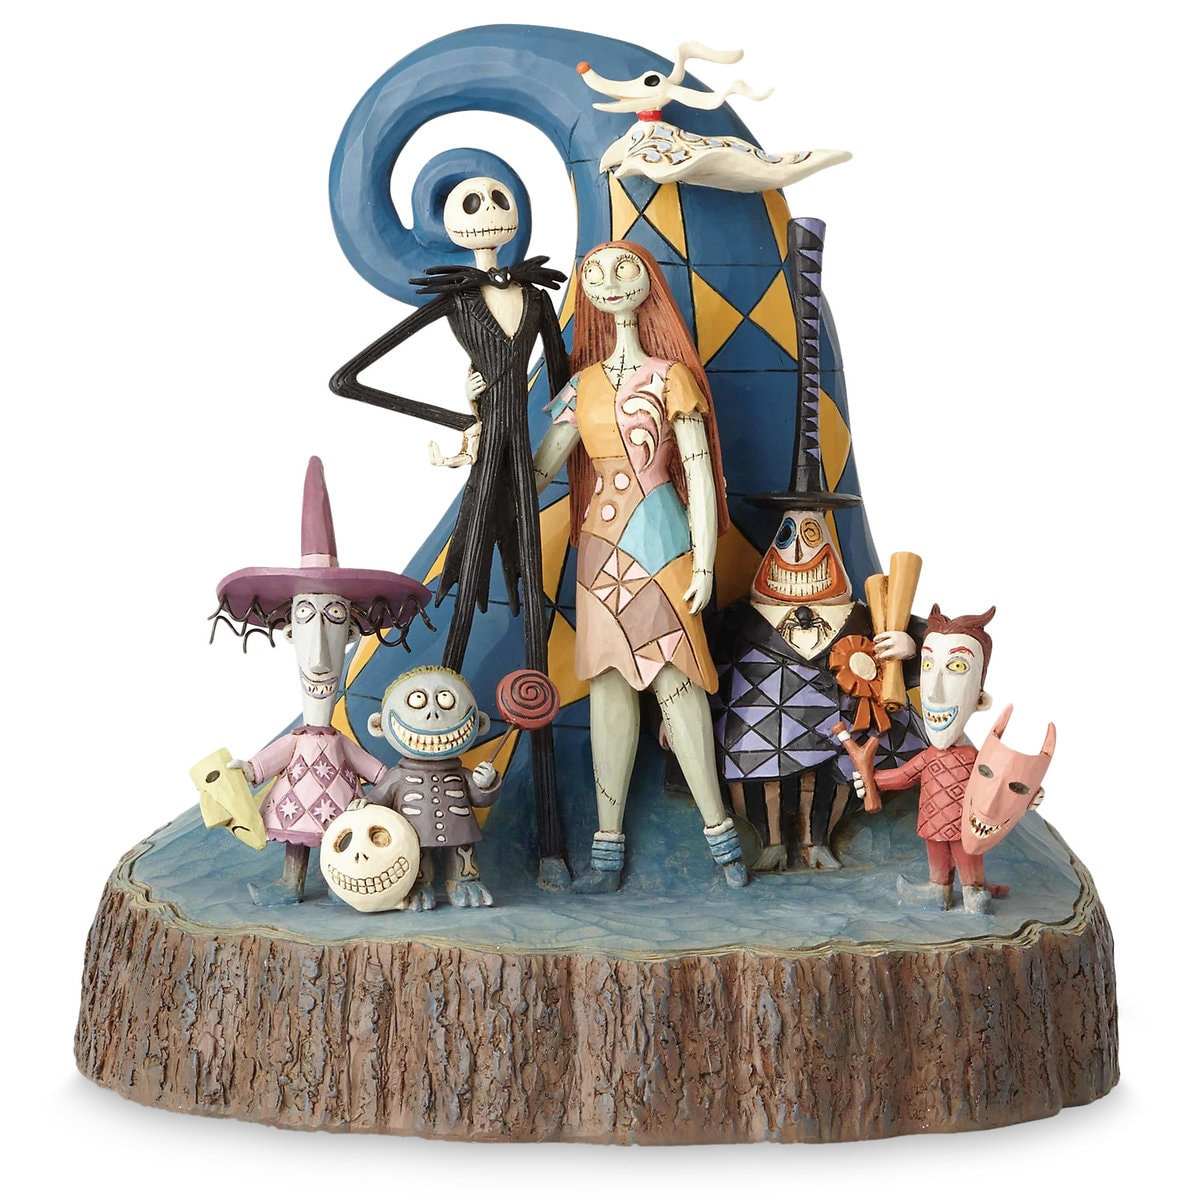 Product Image Of Tim Burtons The Nightmare Before Christmas 25th Anniversary Figure By Jim Shore